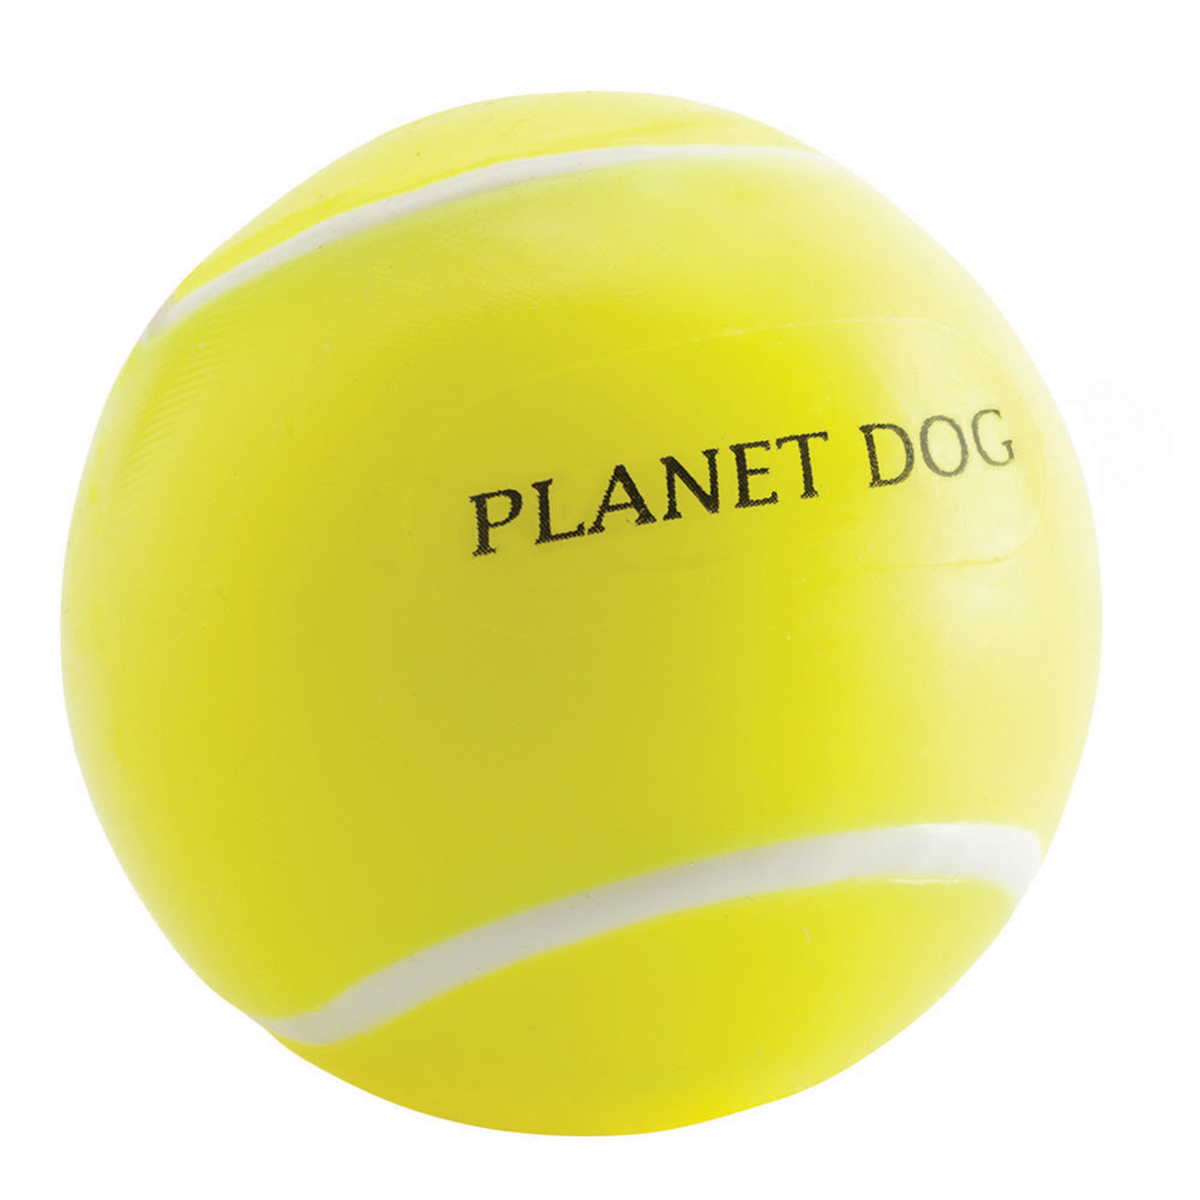 Orbee-Tuff Sport Tennis Ball Dog Toy by Planet Dog